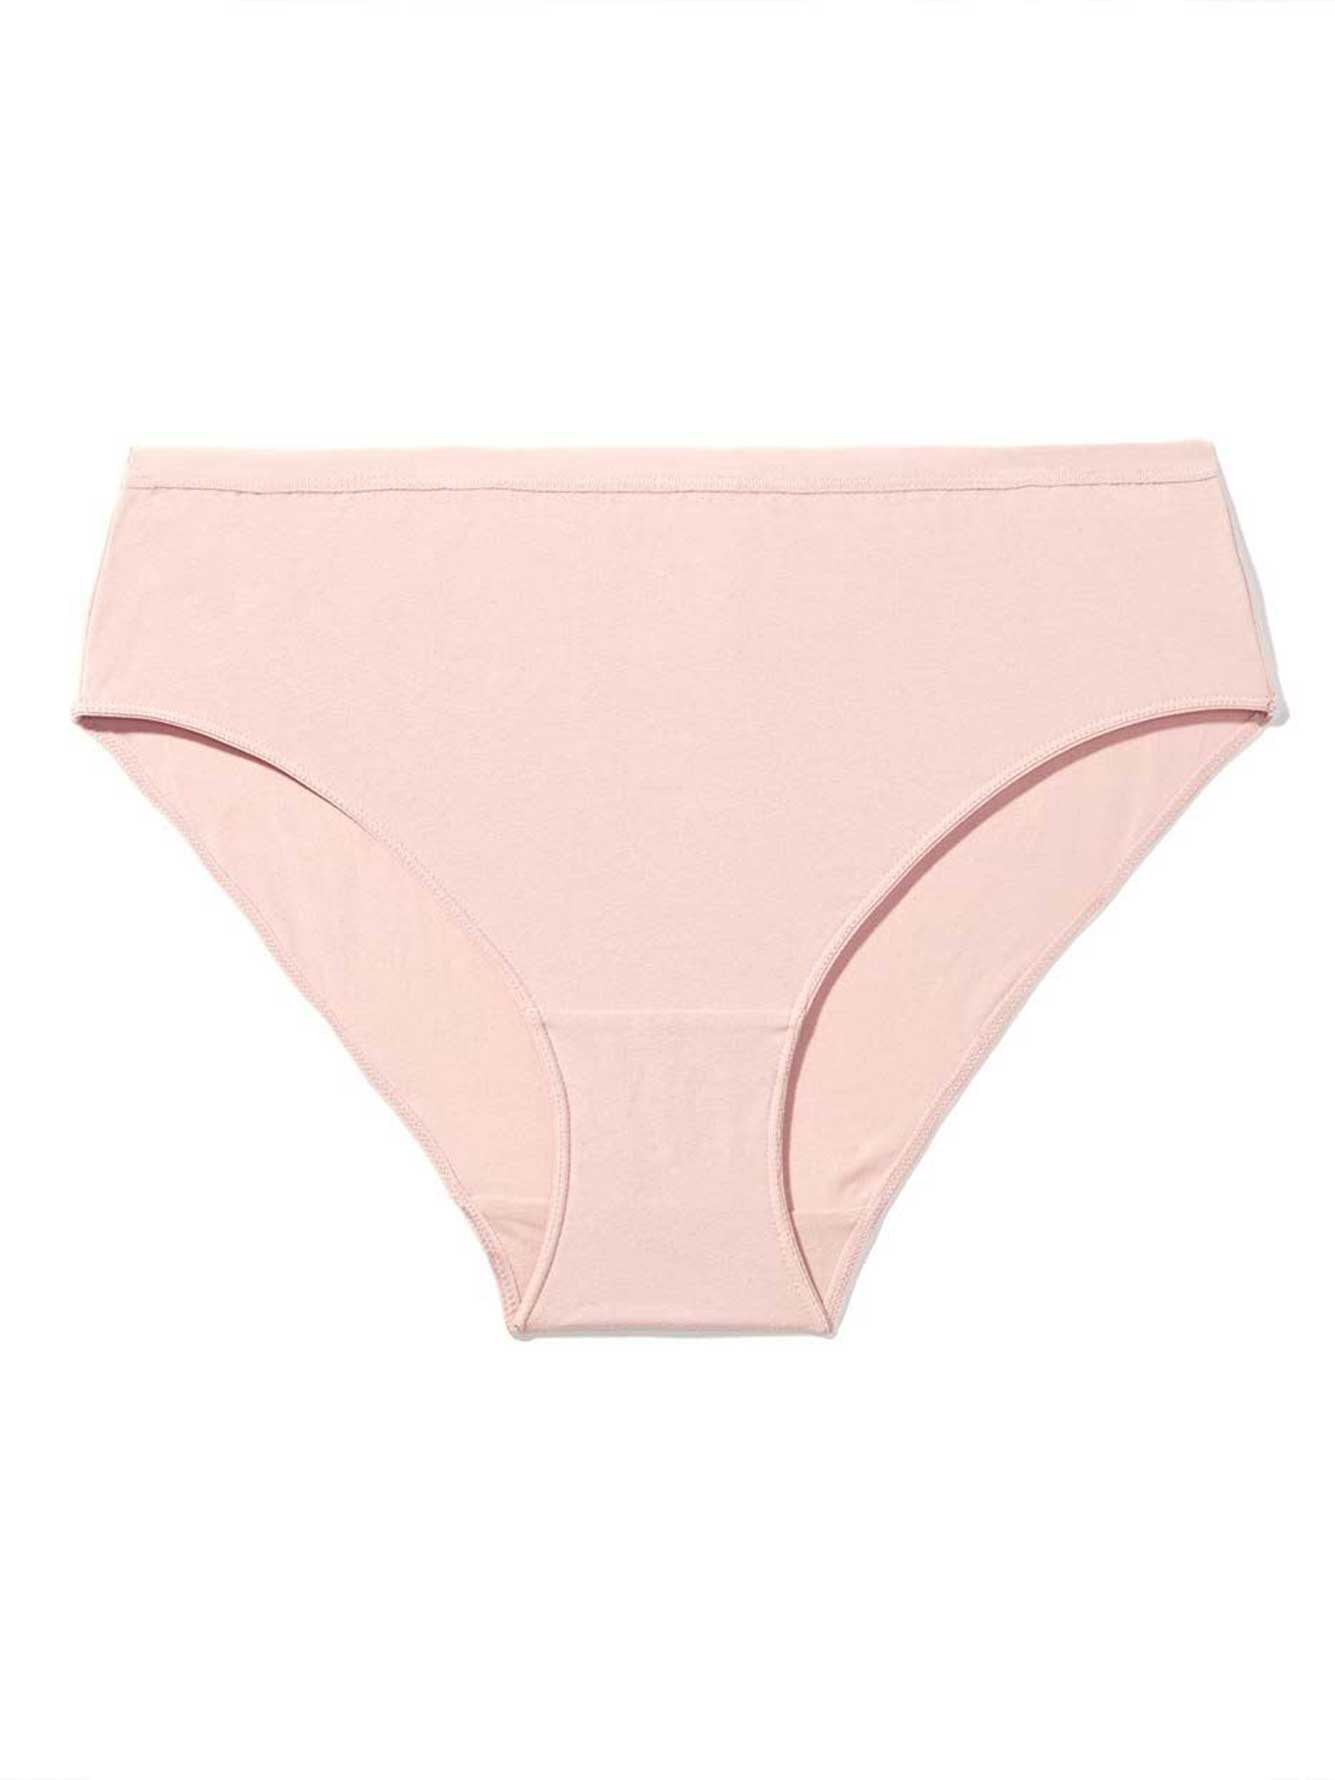 Basic High Cut Panty